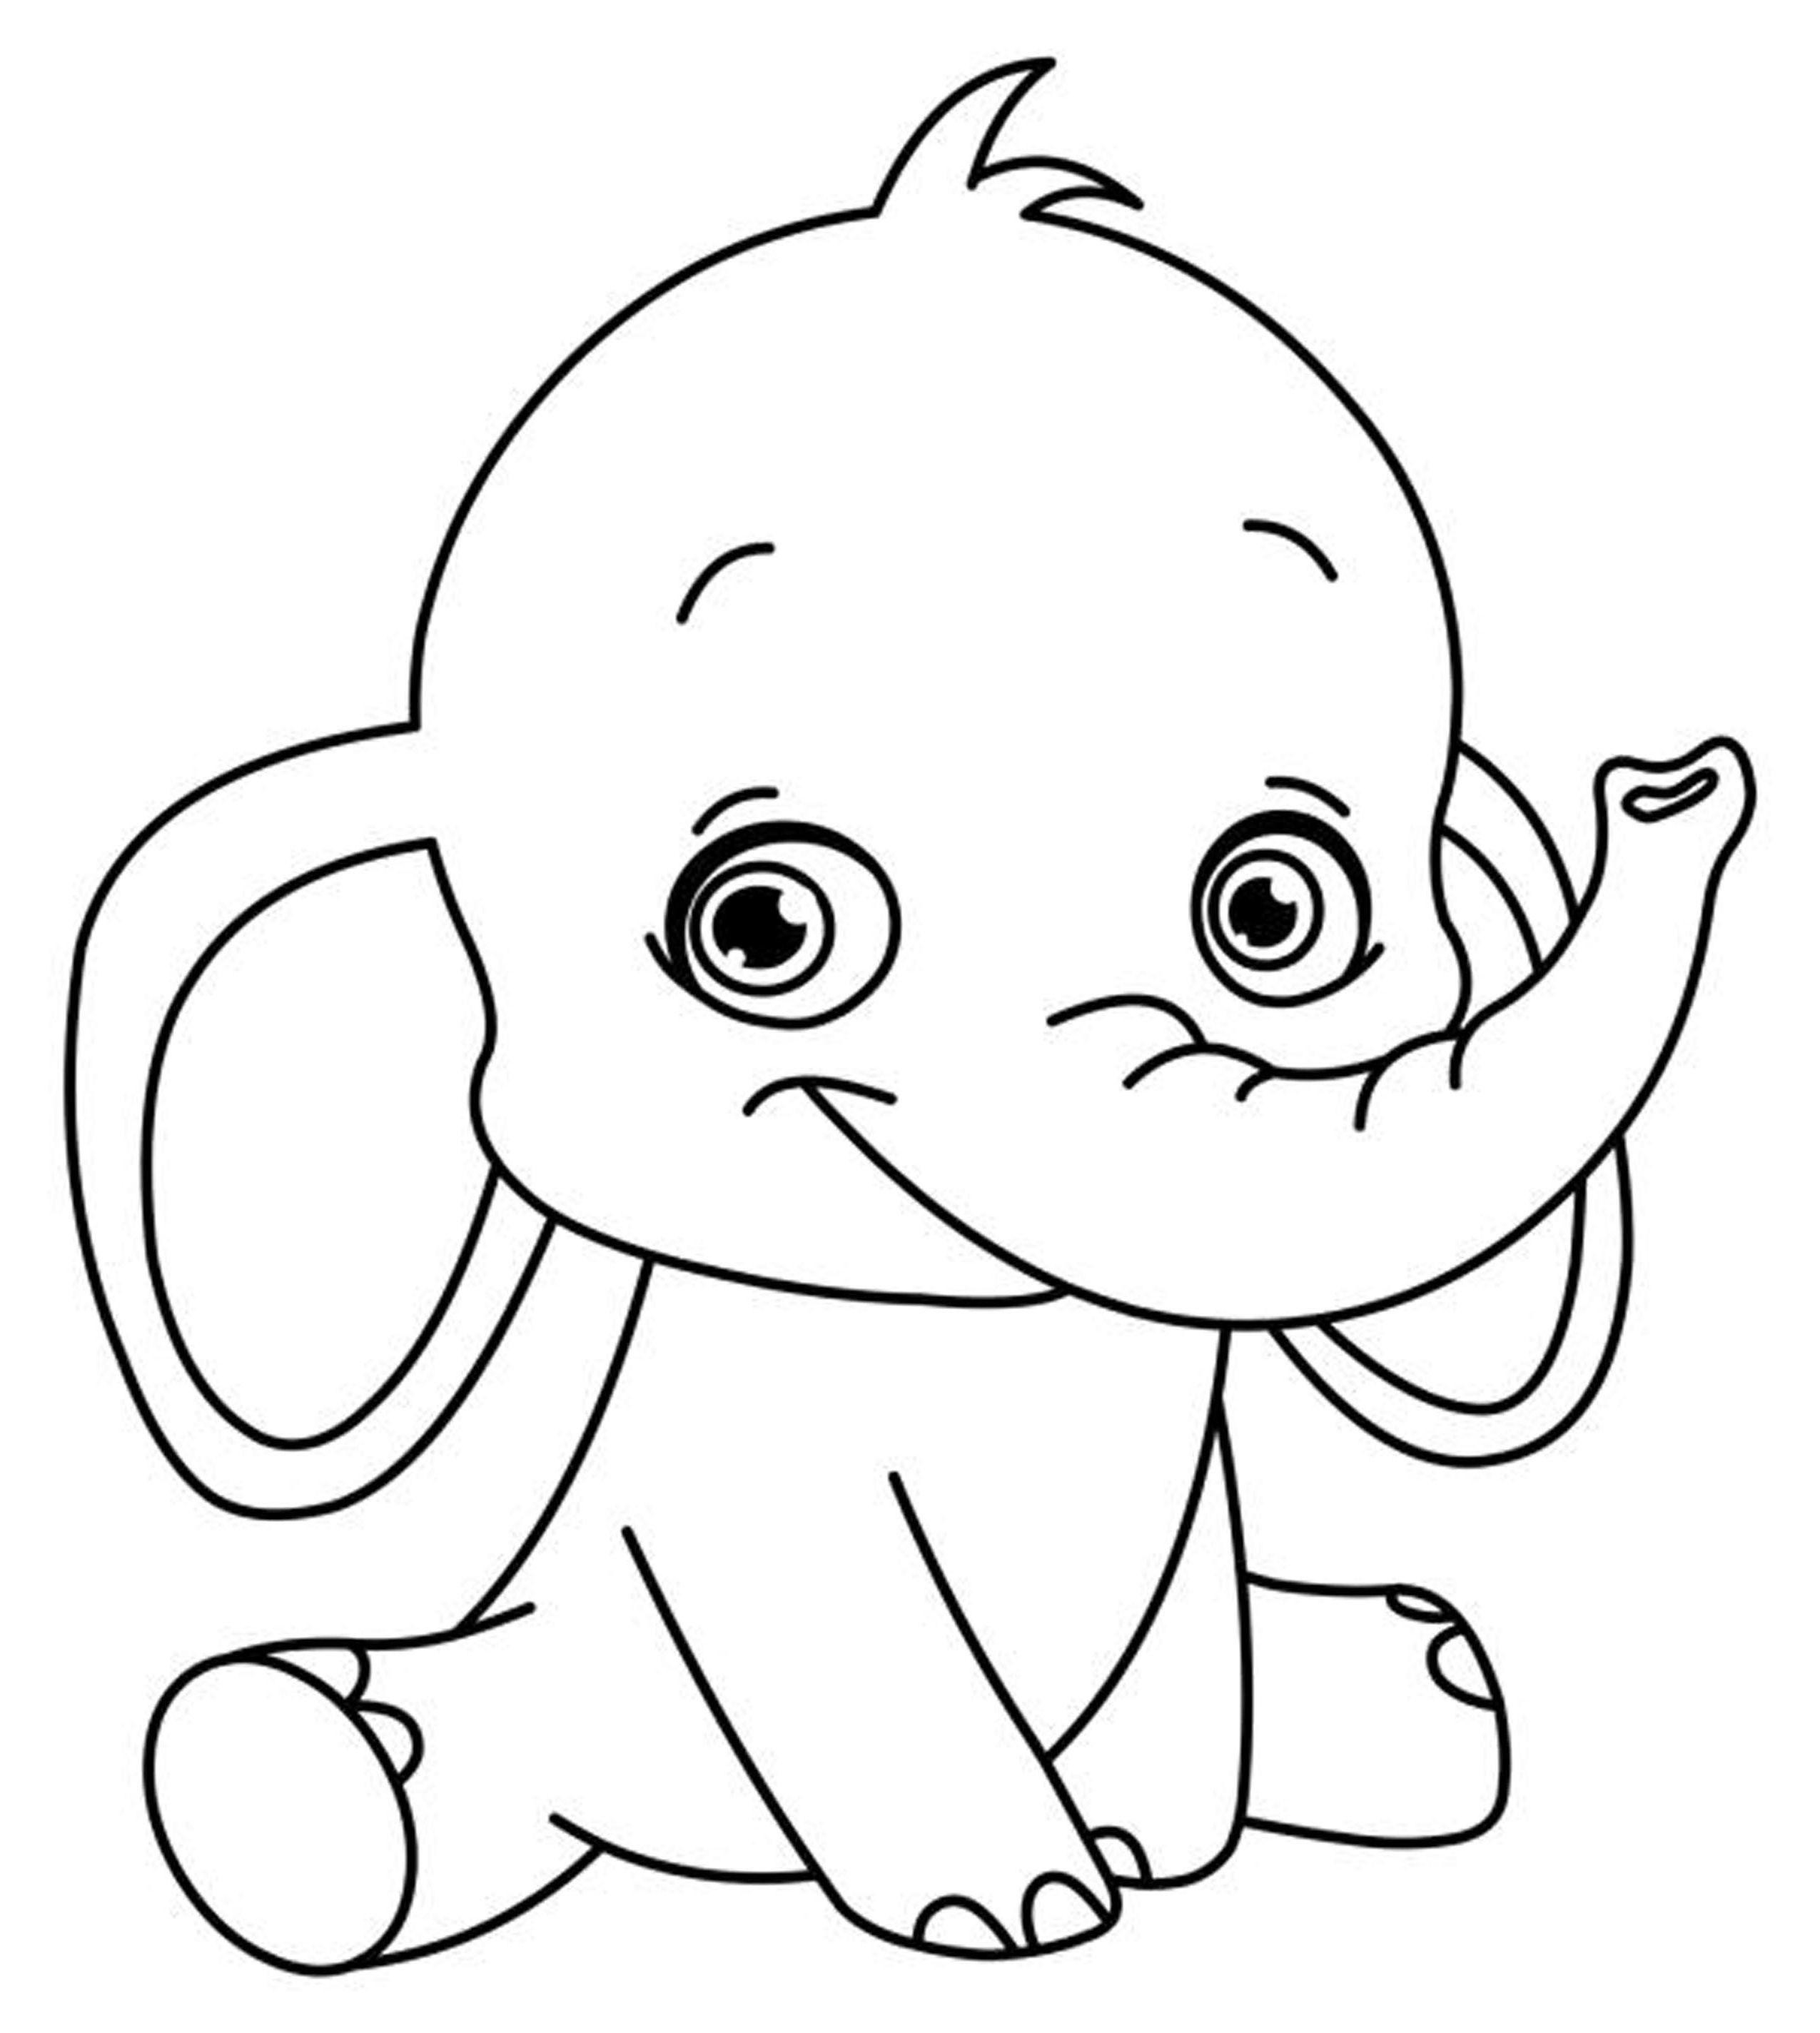 fun coloring pictures strawberry coloring pages best coloring pages for kids pictures fun coloring